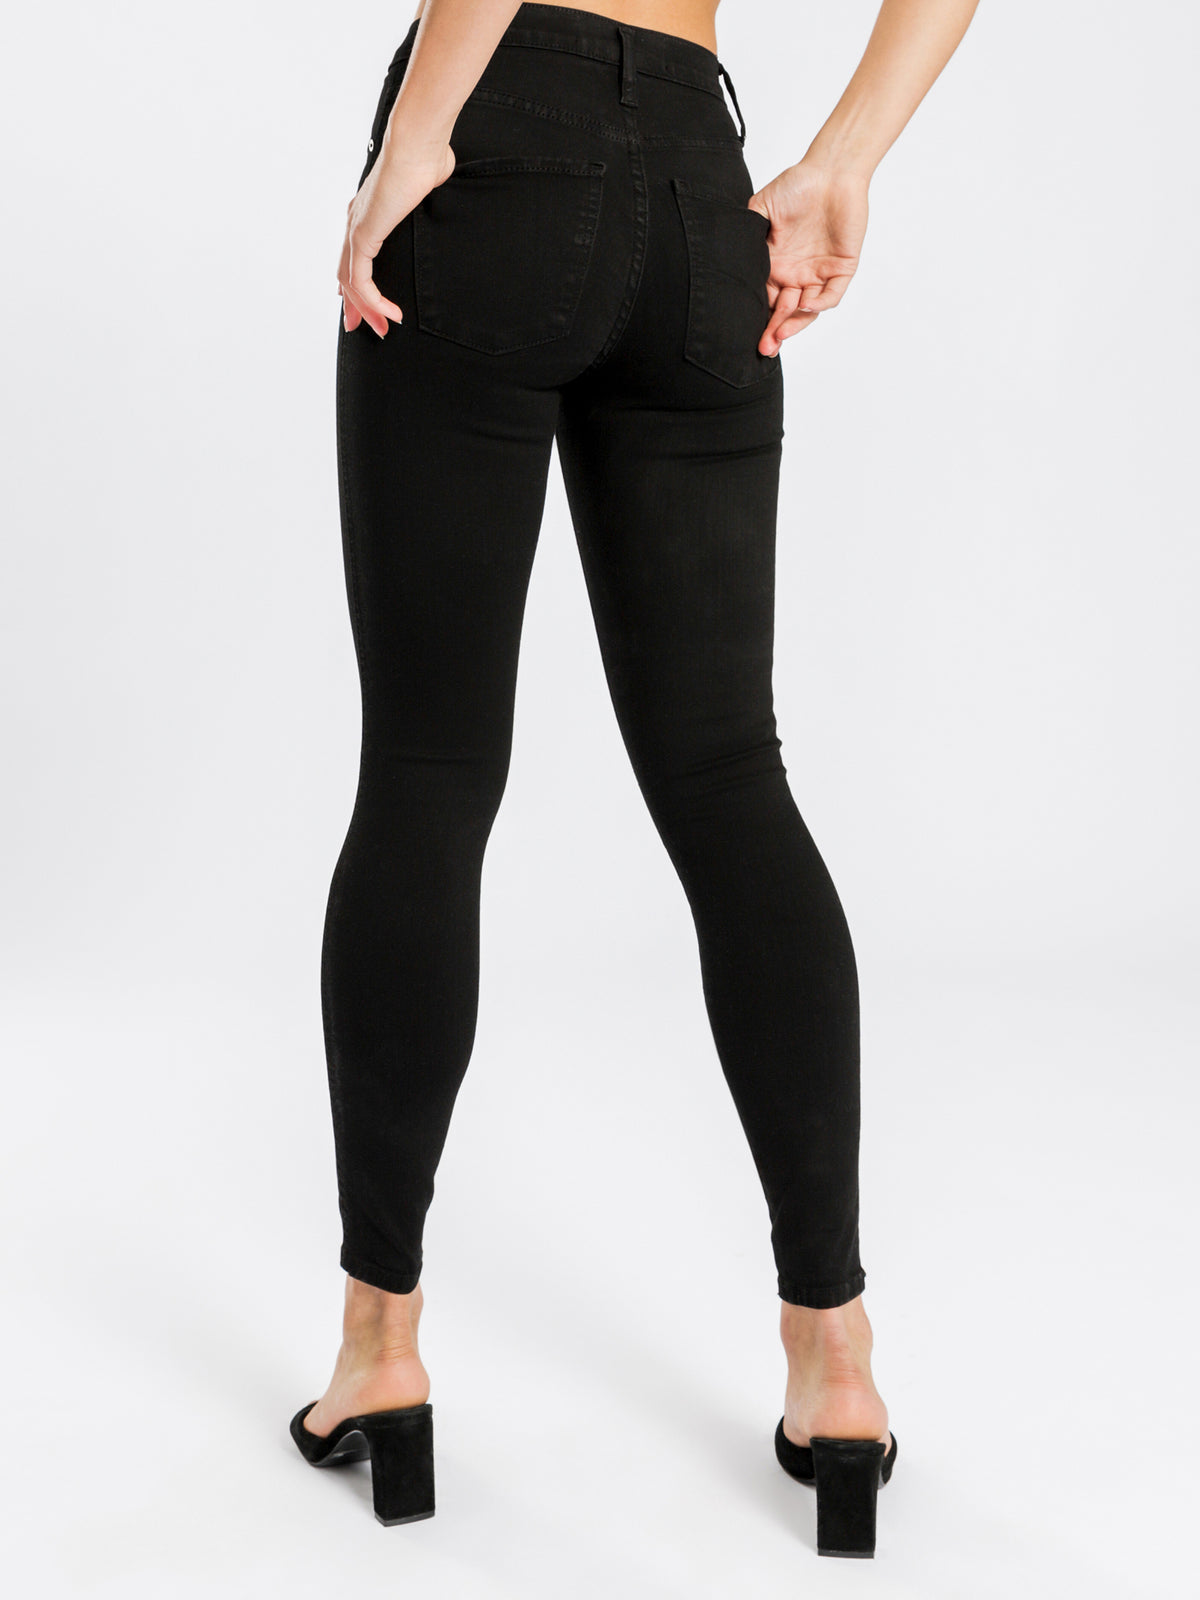 Cult Skinny High-Rise Ankle Jeans in Power Black Denim